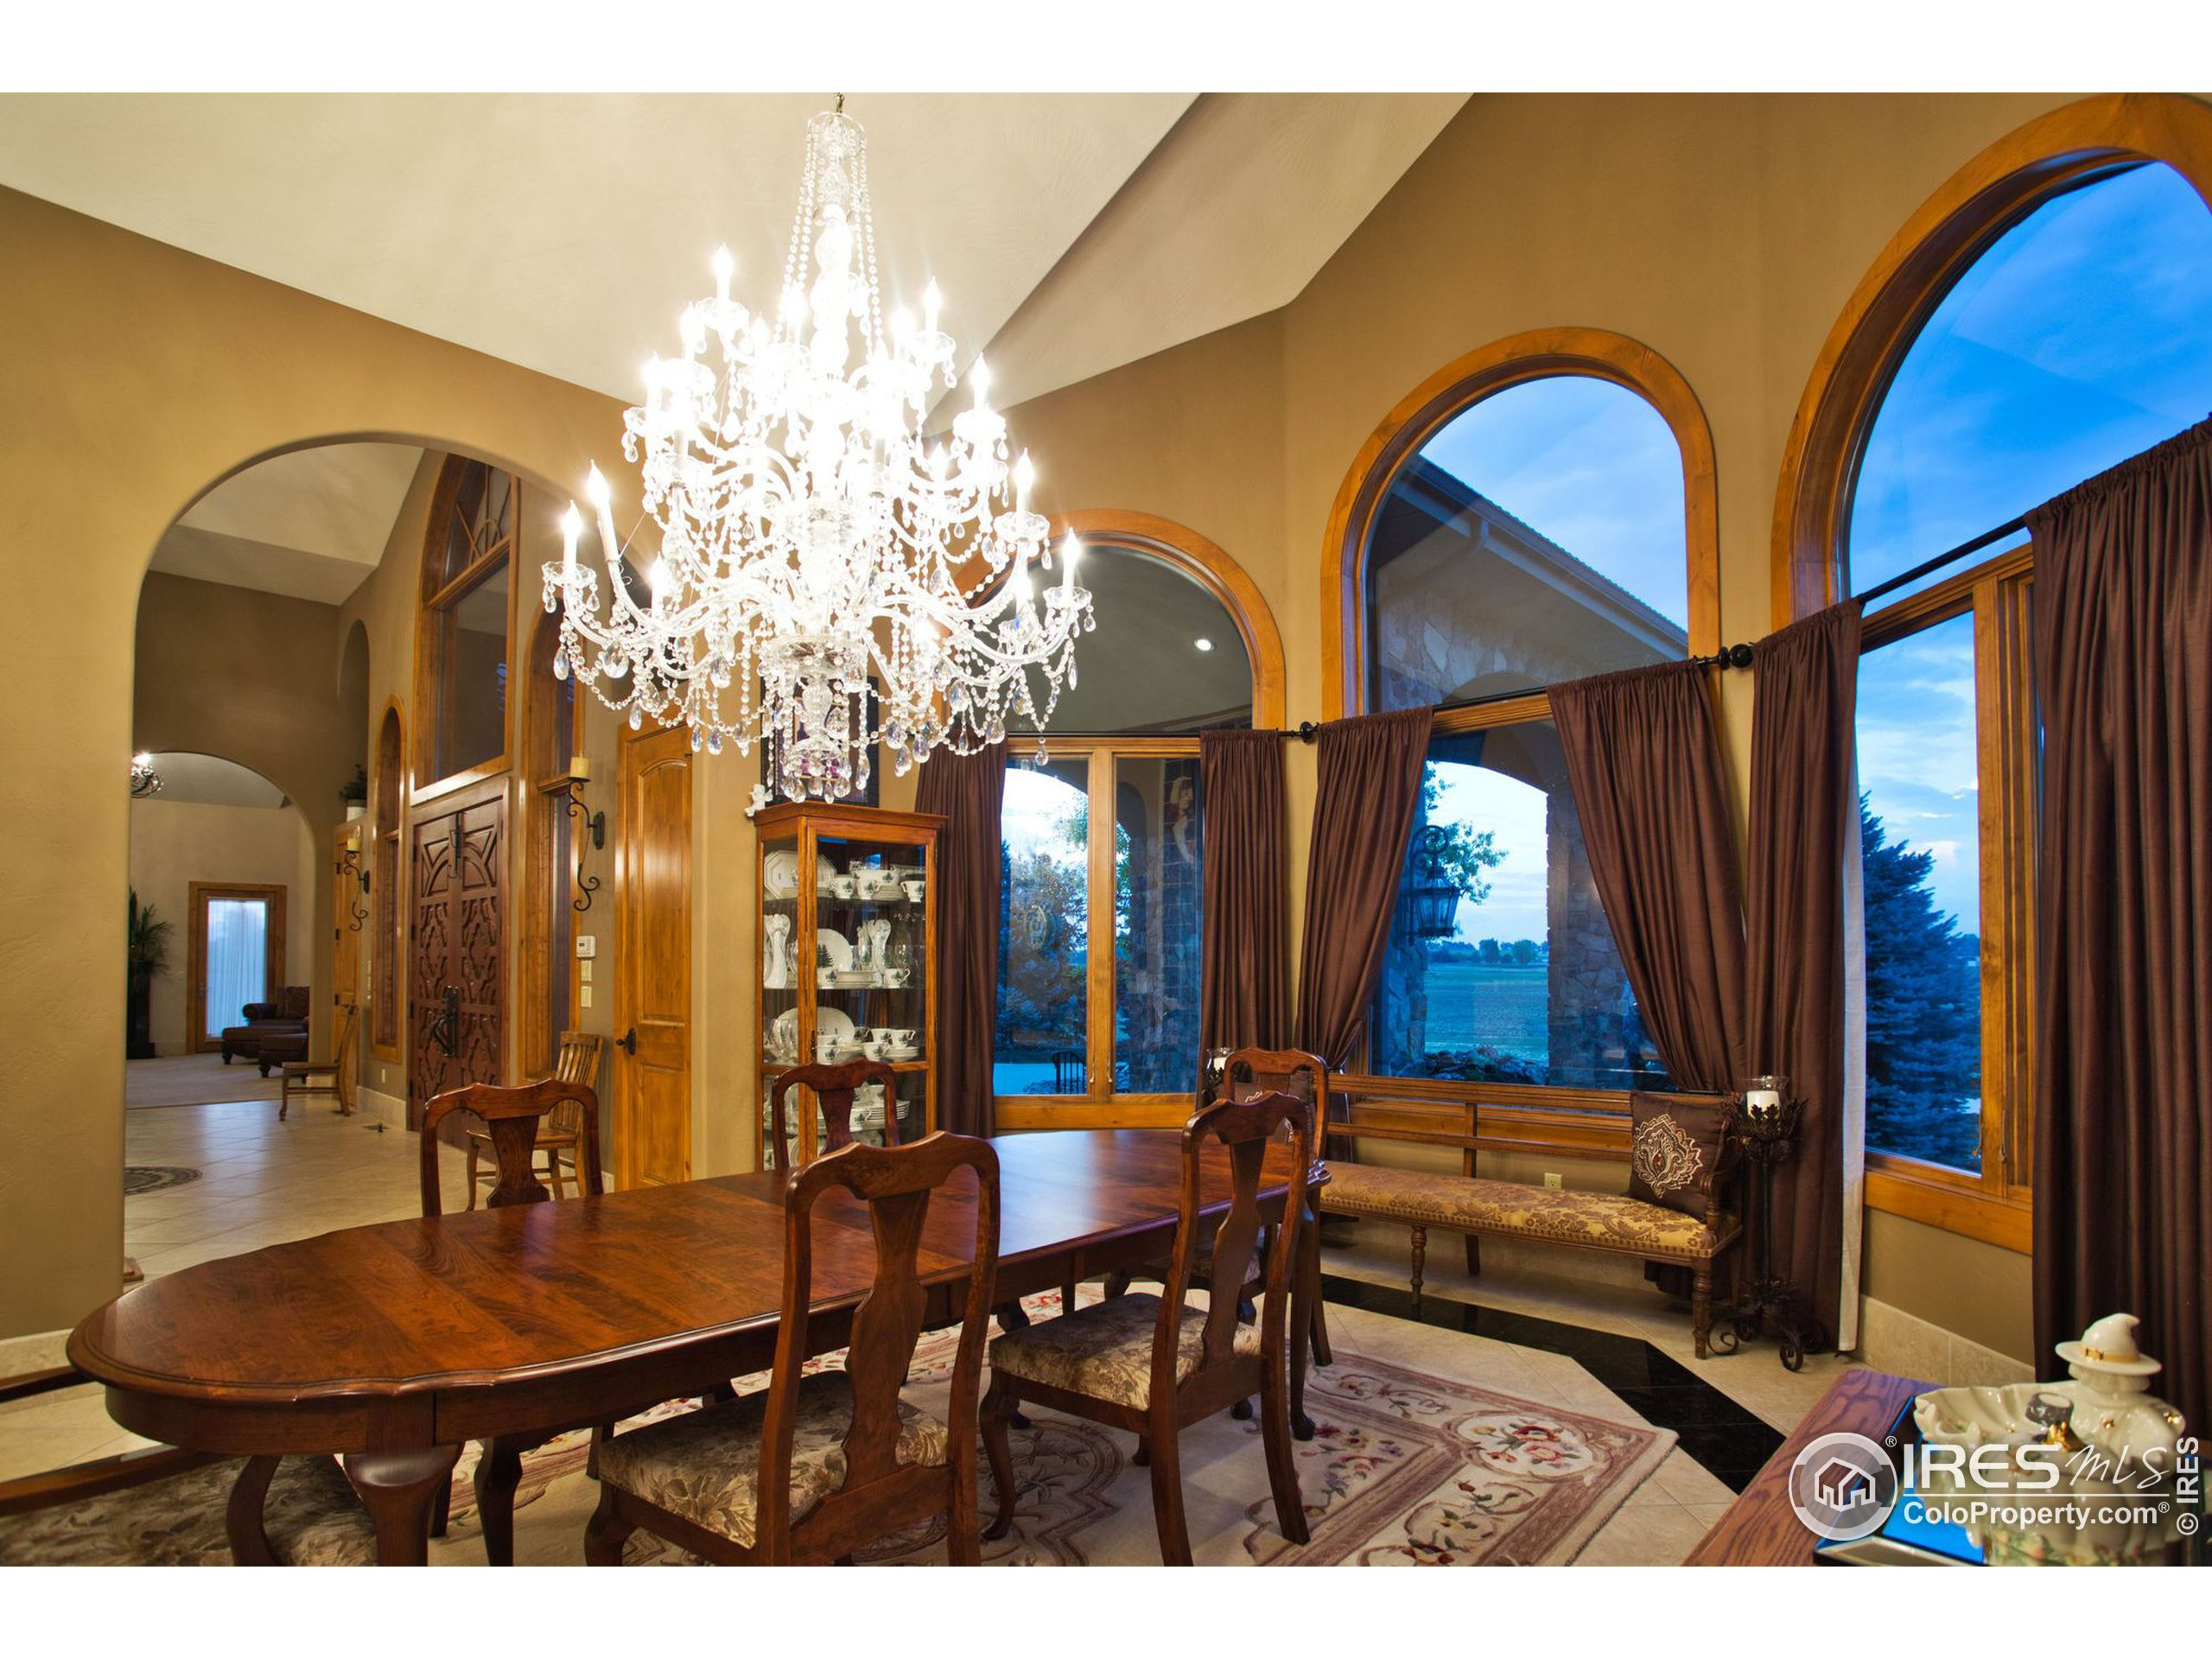 Formal dining, with views!